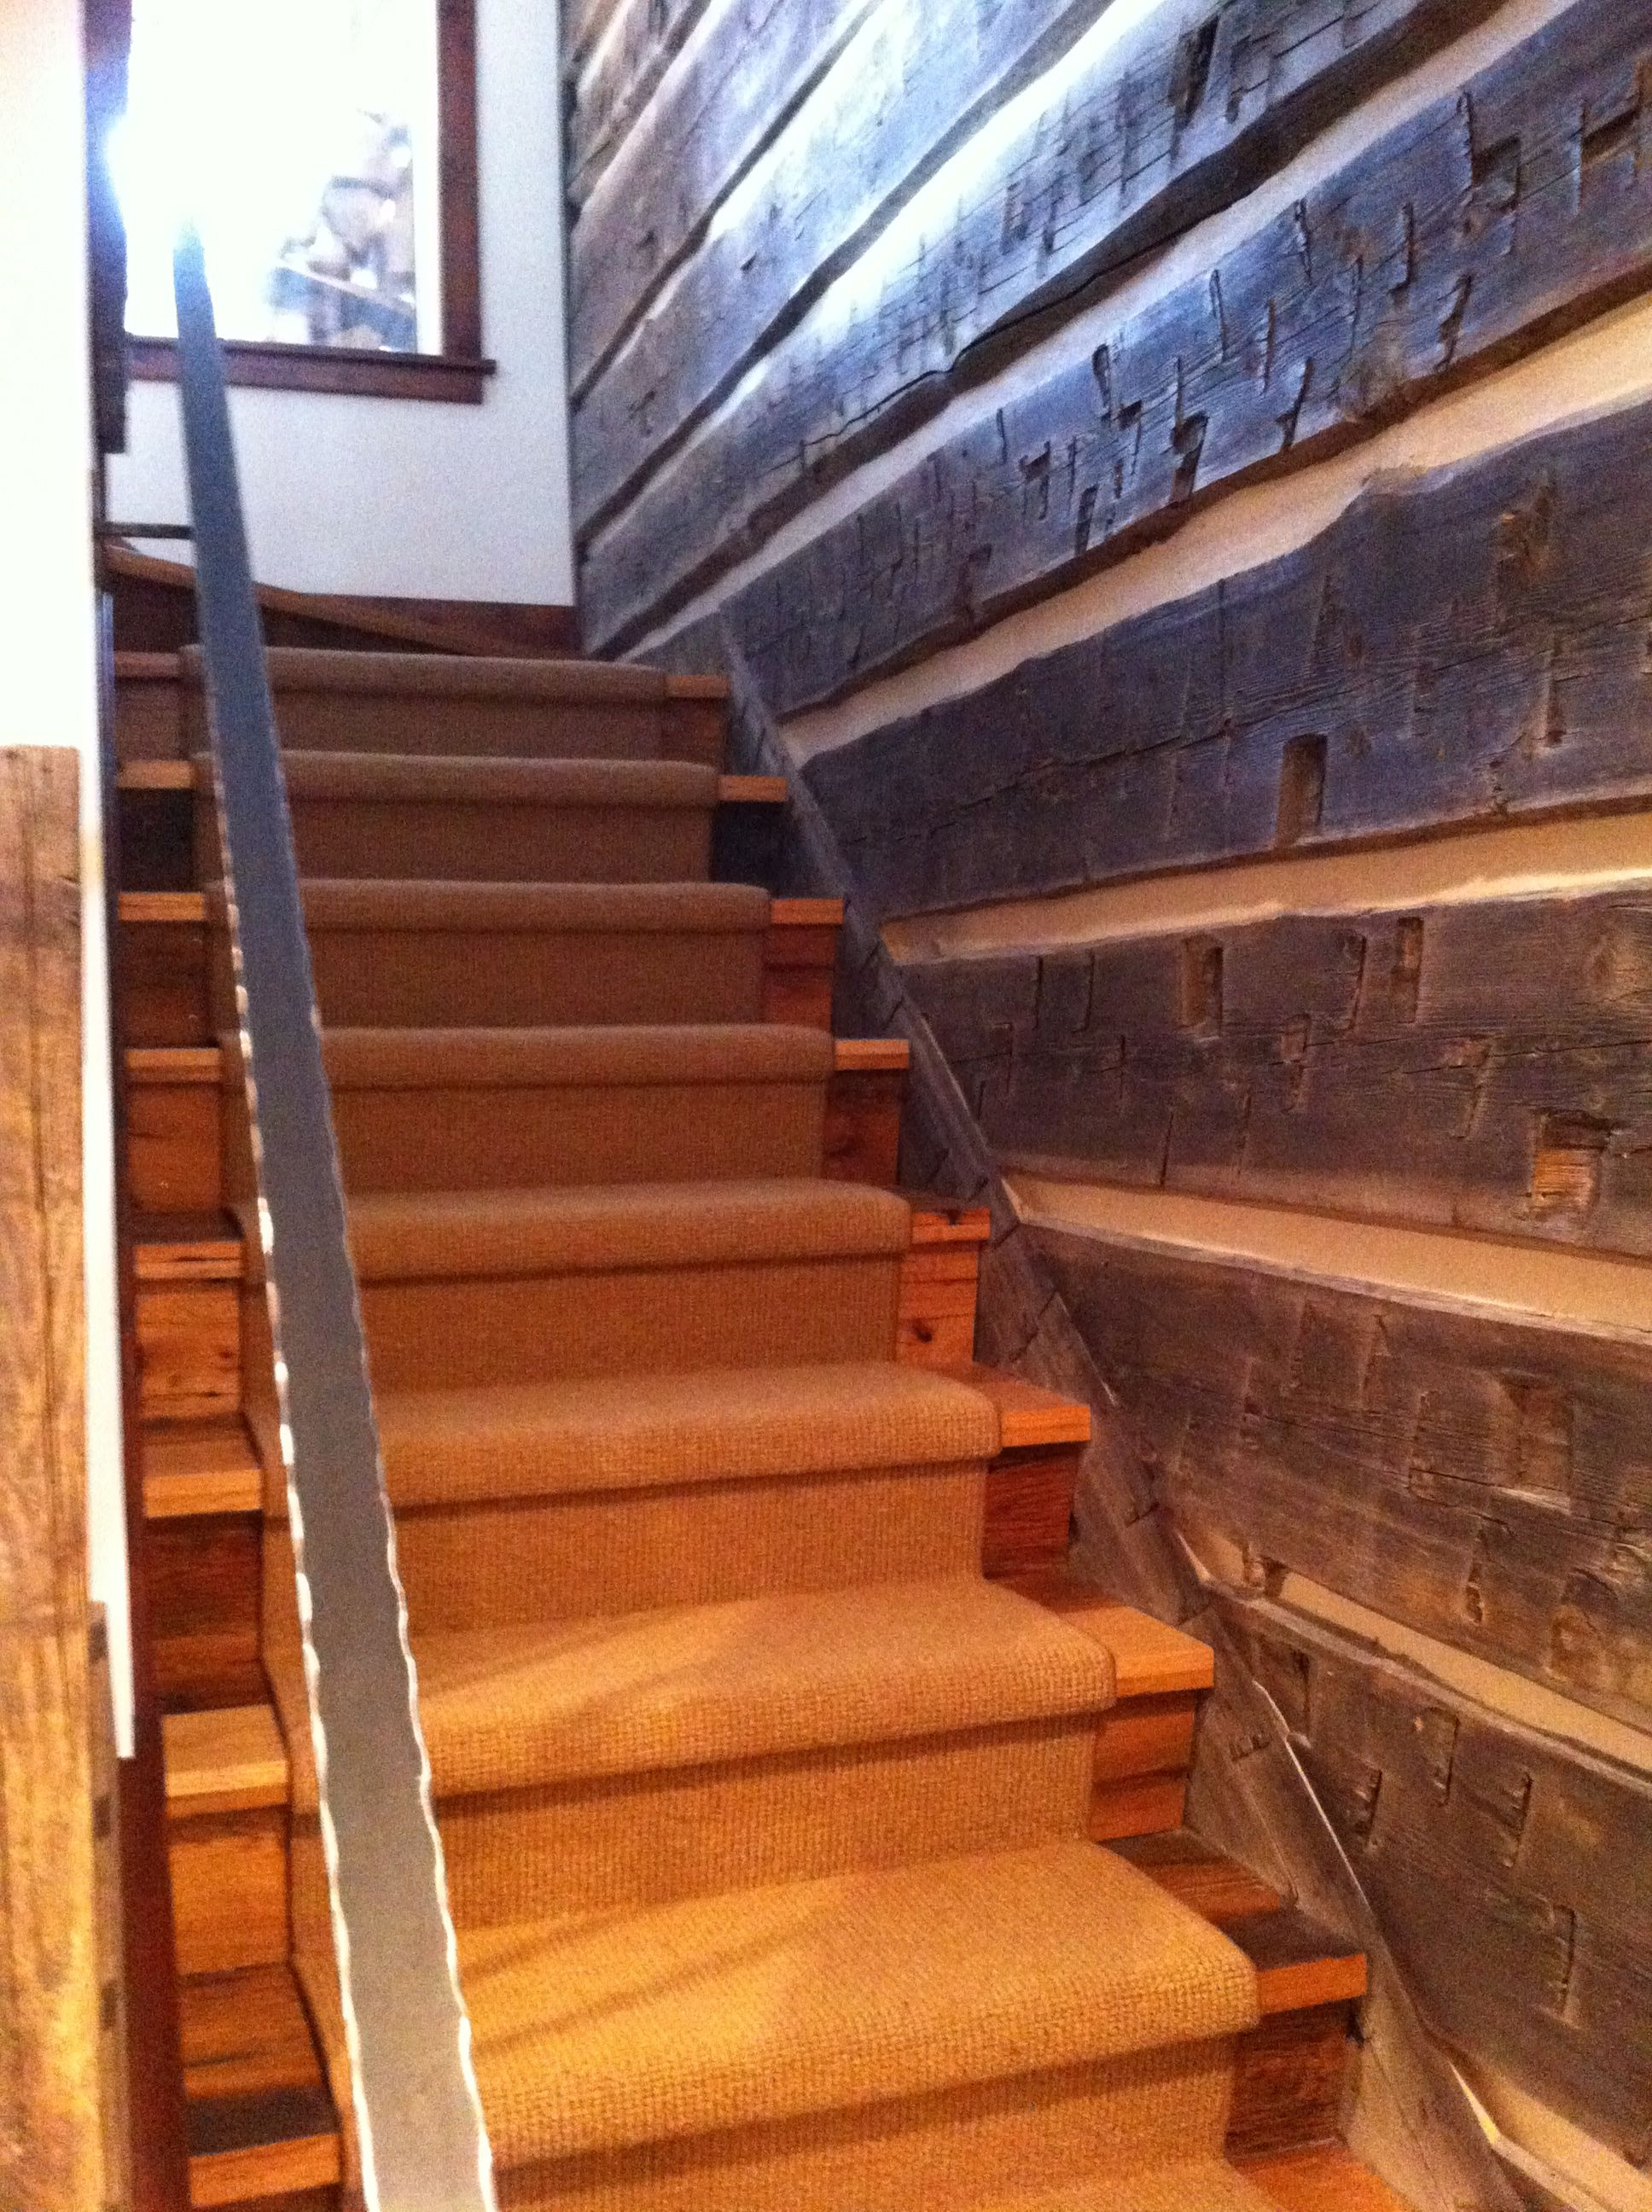 A Custom Made Distressed Metal Hand Rail Reclaimed Oak Stair   Distressed Wood Stair Treads   Unfinished   Barn Wood   Diy   Commercial   Adhesive Padding 31 Wide Tread Single 10 Deep